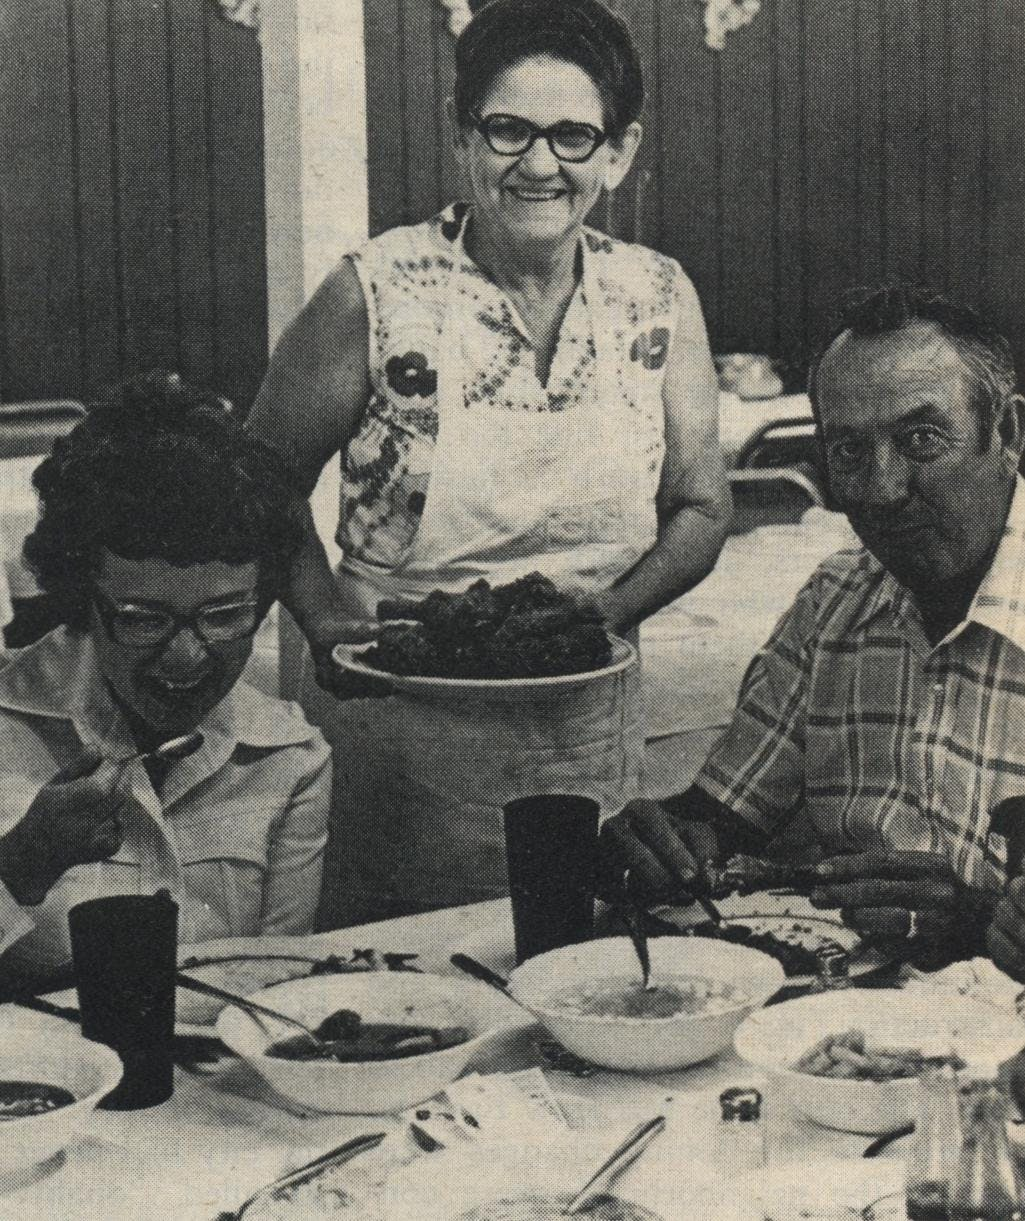 If it cackles, fry it: Mrs. M. B. Allen has been serving up platefuls of fried chicken in West Texas for 25 years.